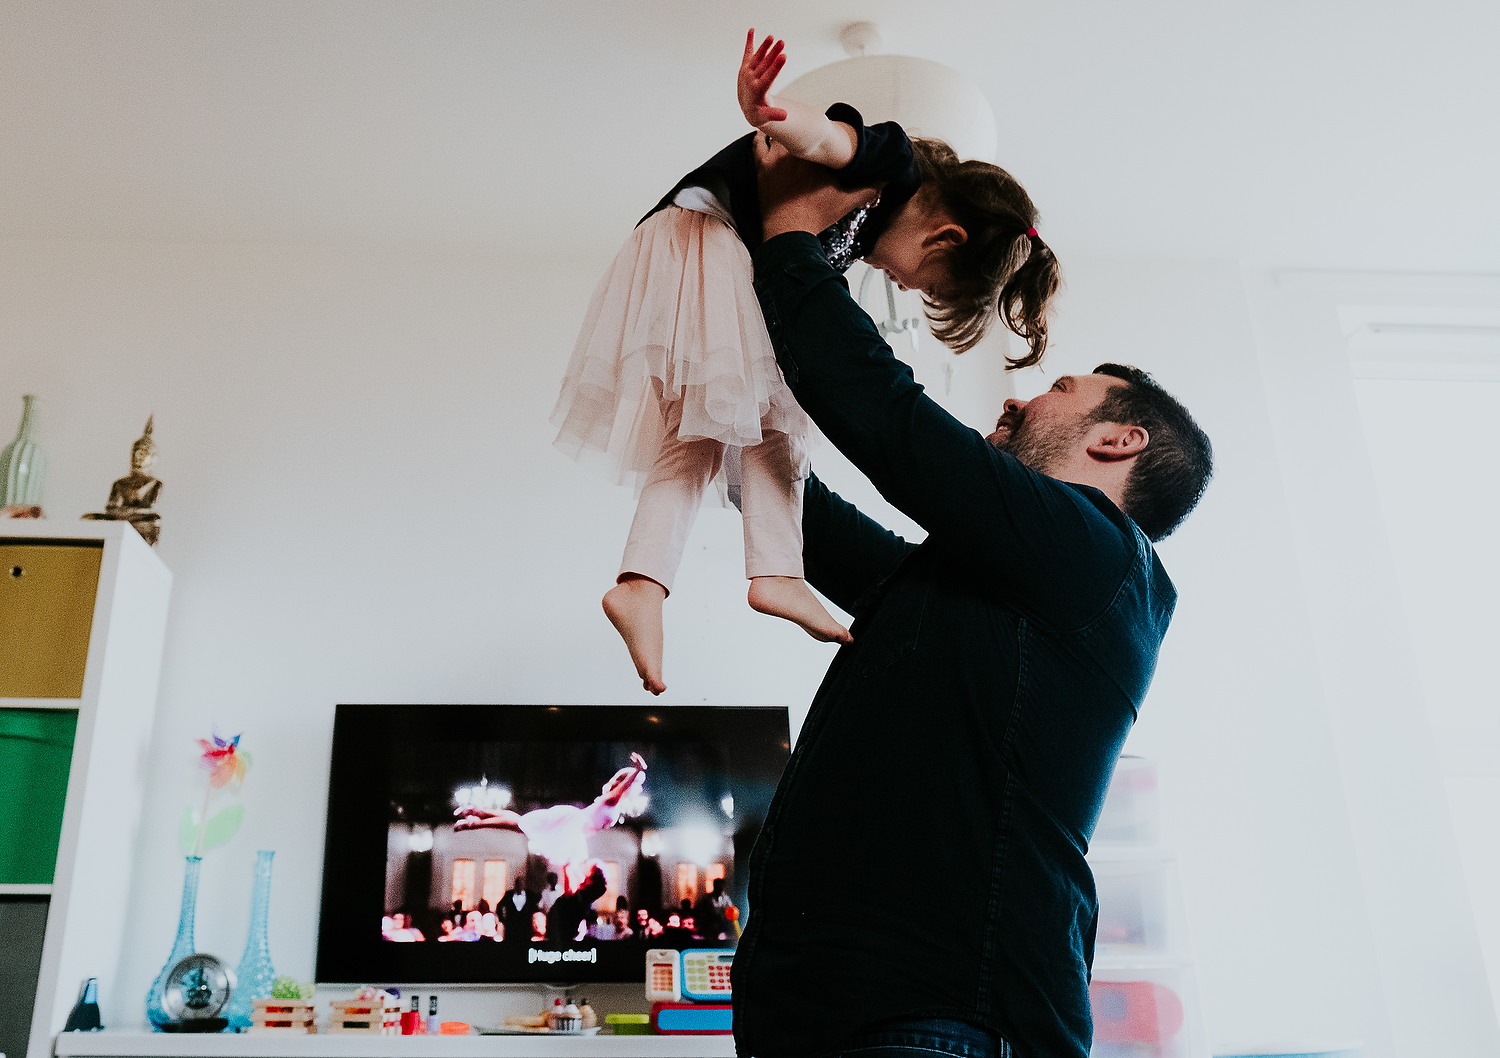 islington family photographer dad and toddler daughter dancing in living room at home with dirty dancing movie on tv in background